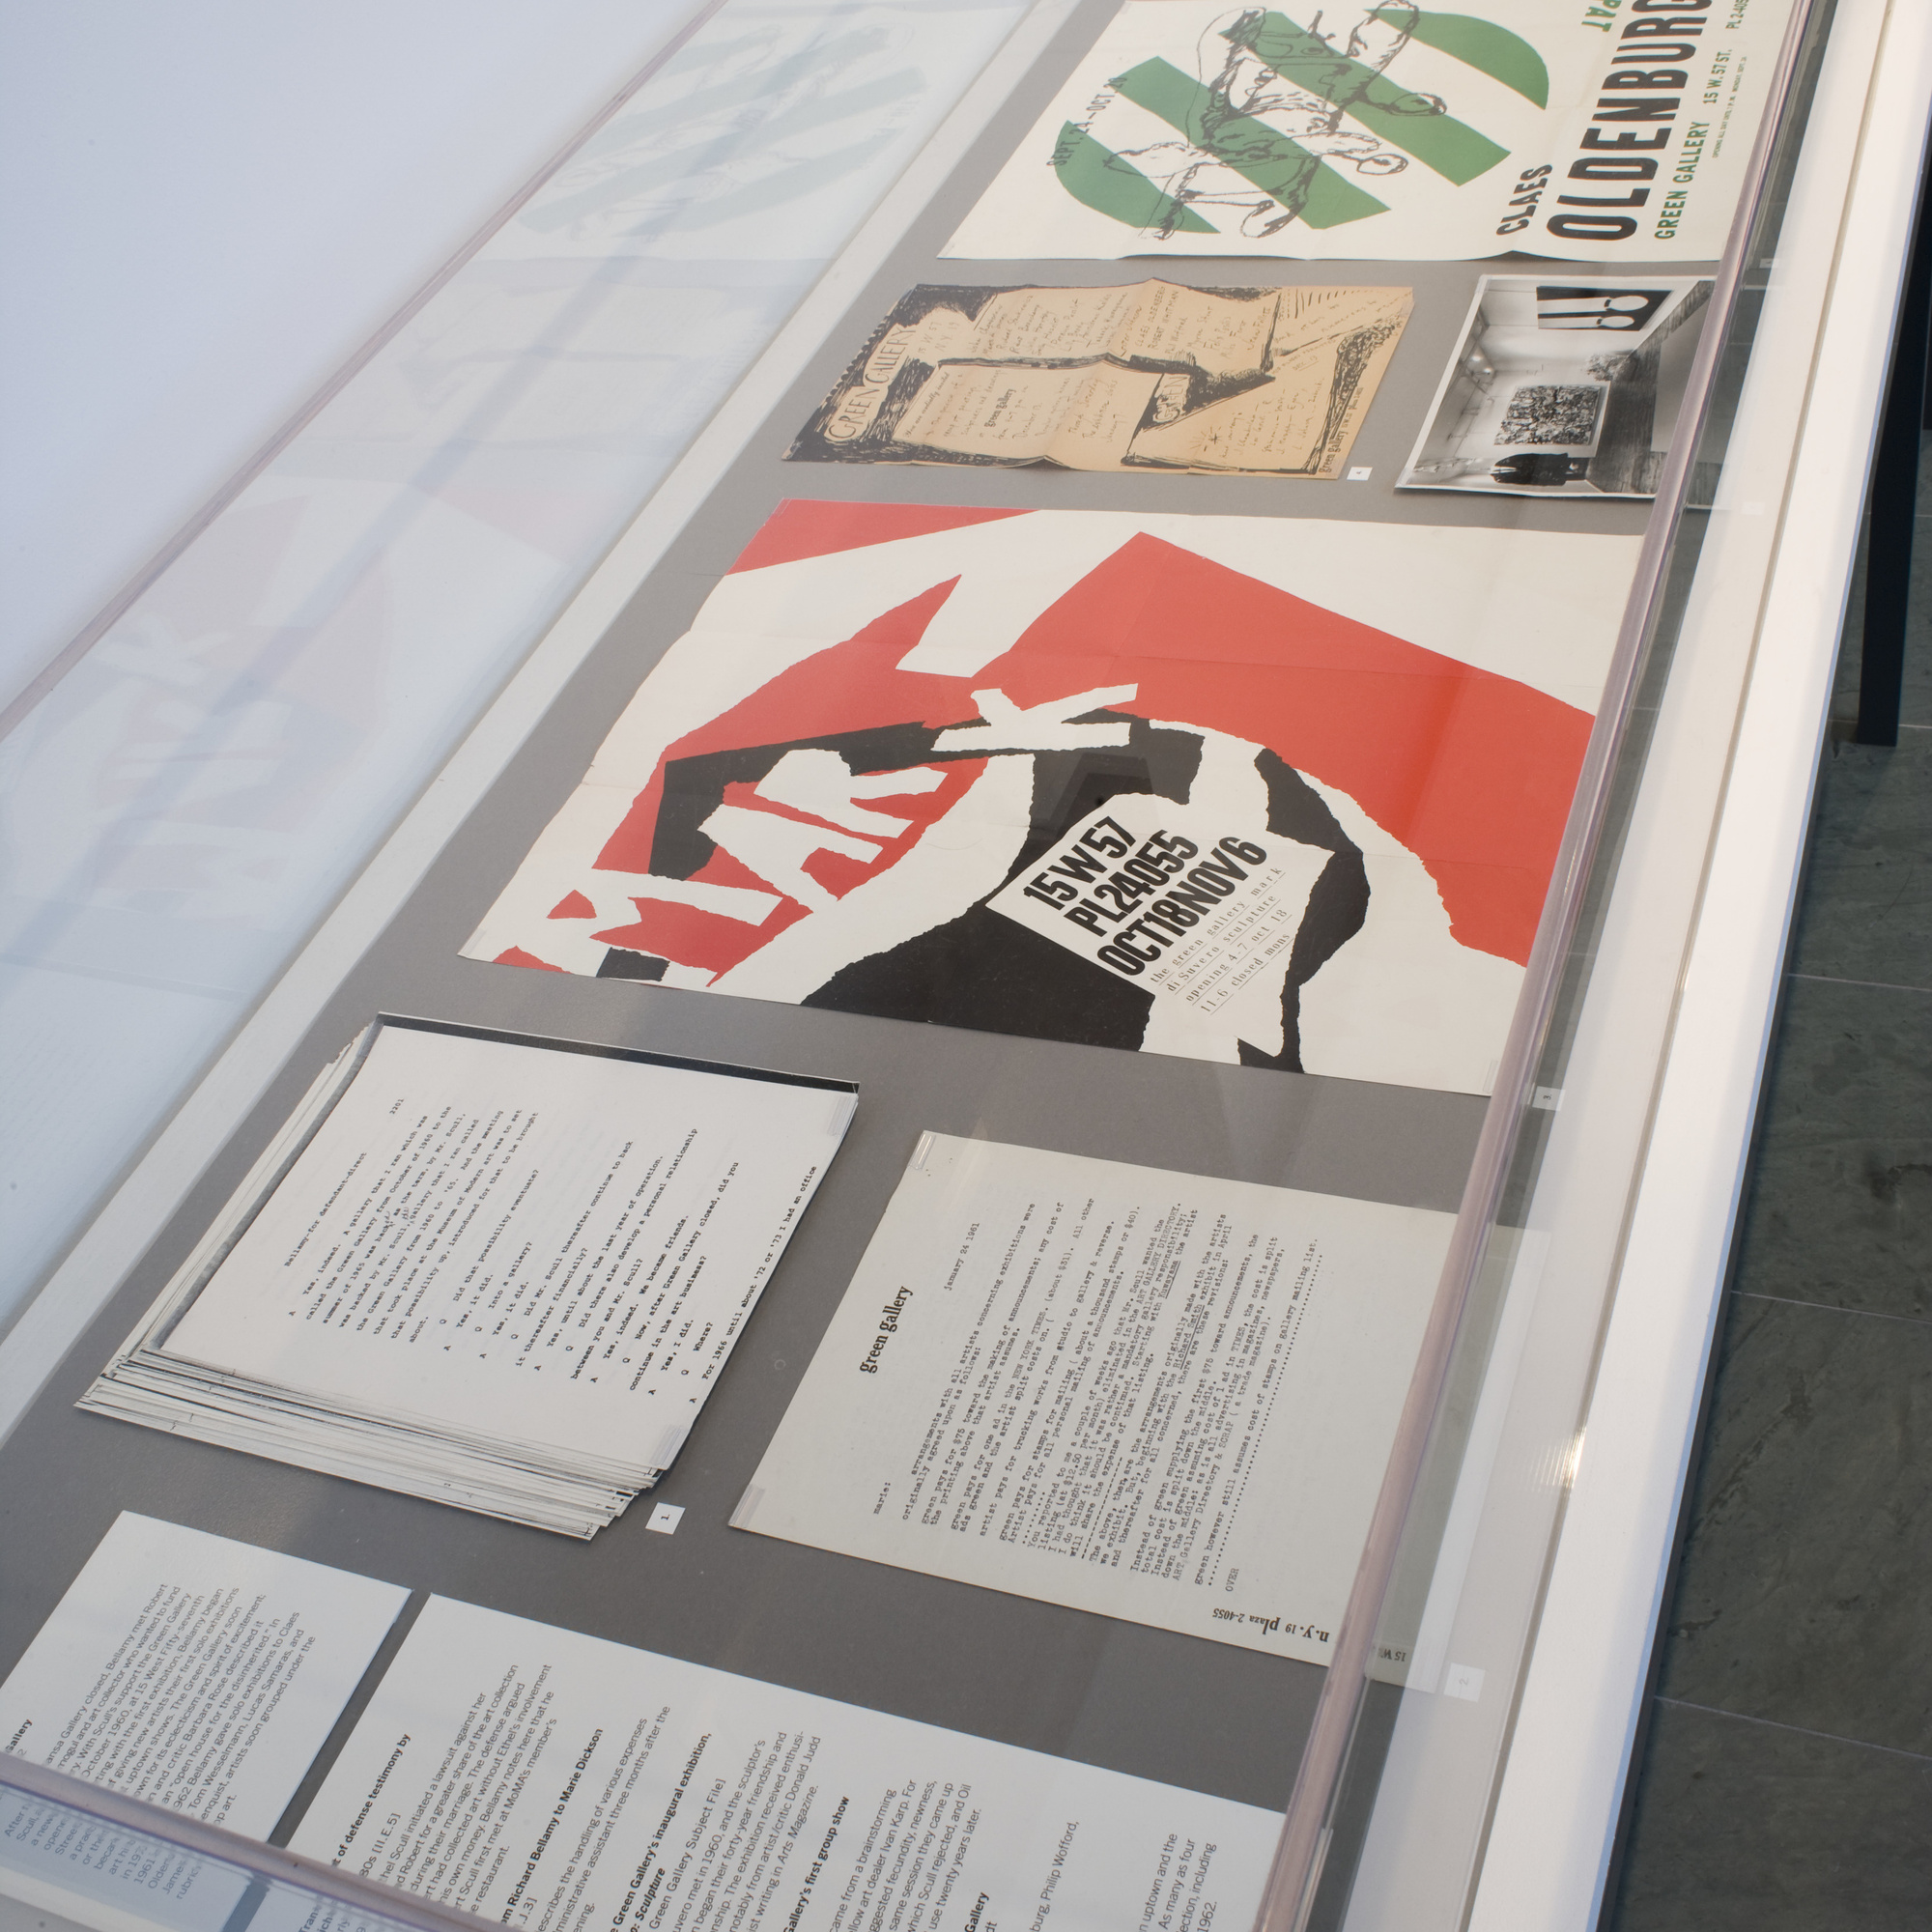 Installation view of The Dealer as Co-Conspirator: Selections from the Richard Bellamy Papers in The Museum of Modern Art Archives. © 2016 The Museum of Modern Art, New York. Photo: Thomas Griesel